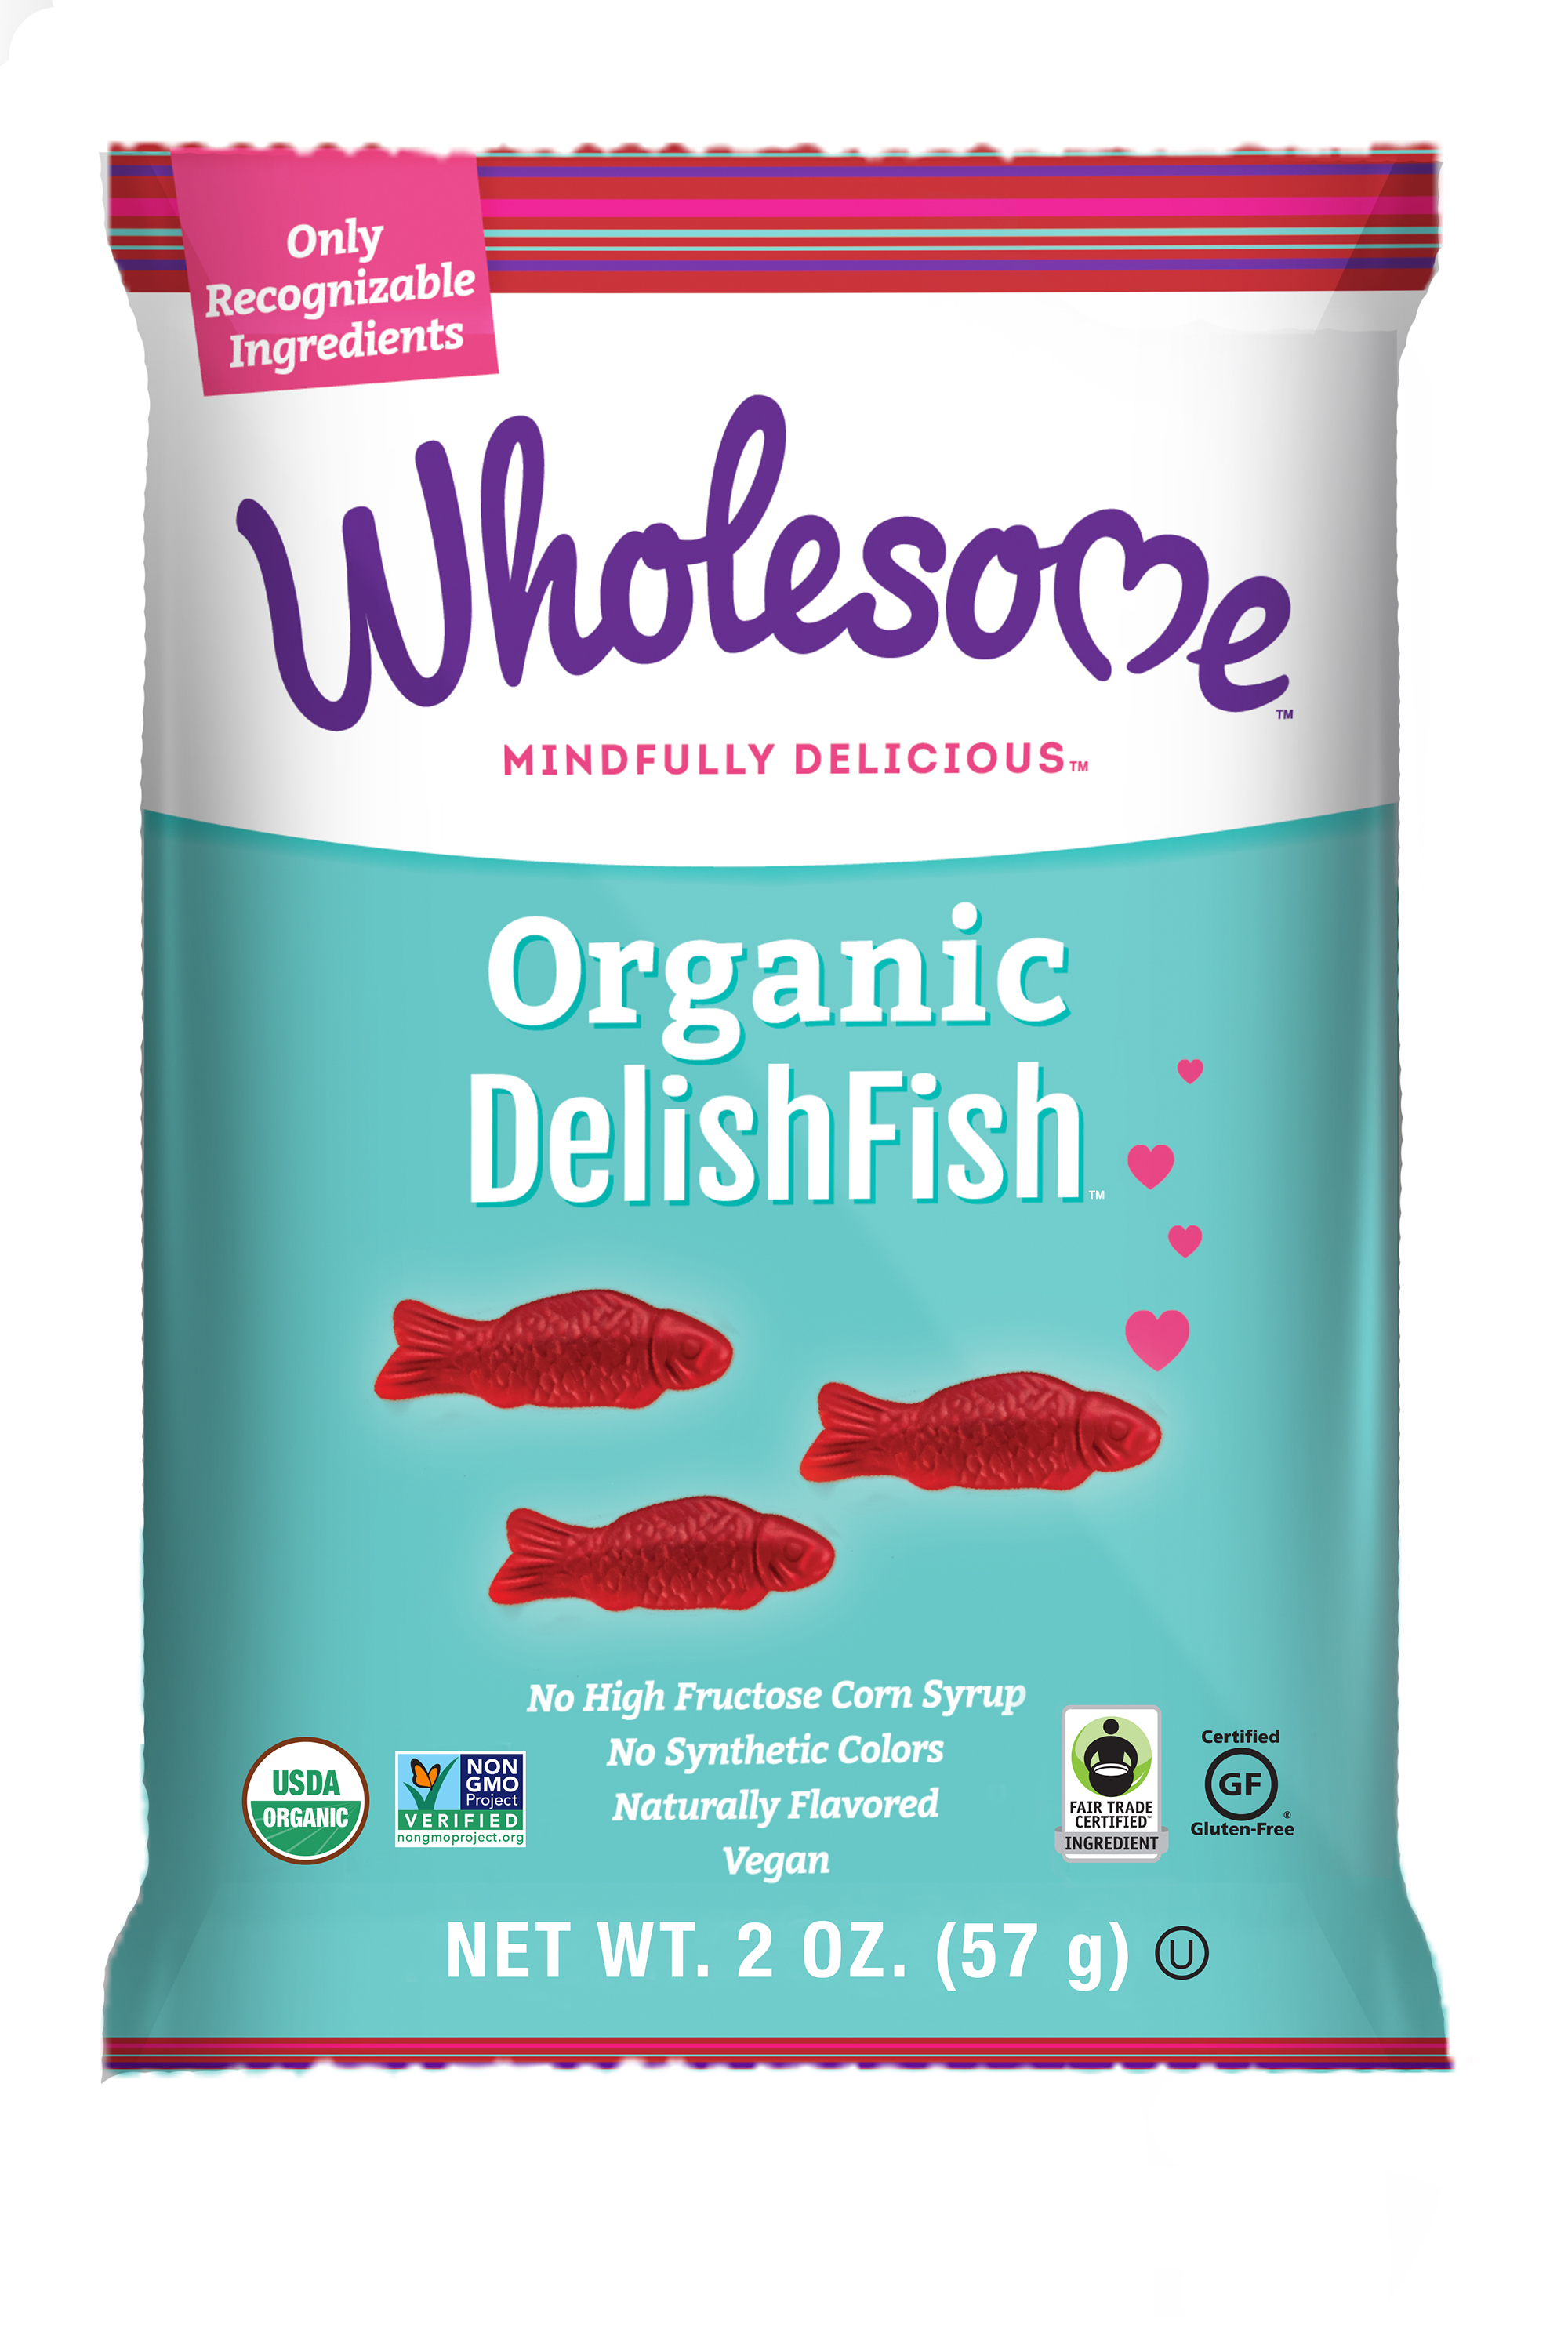 Wholesome: Organic DelishFish